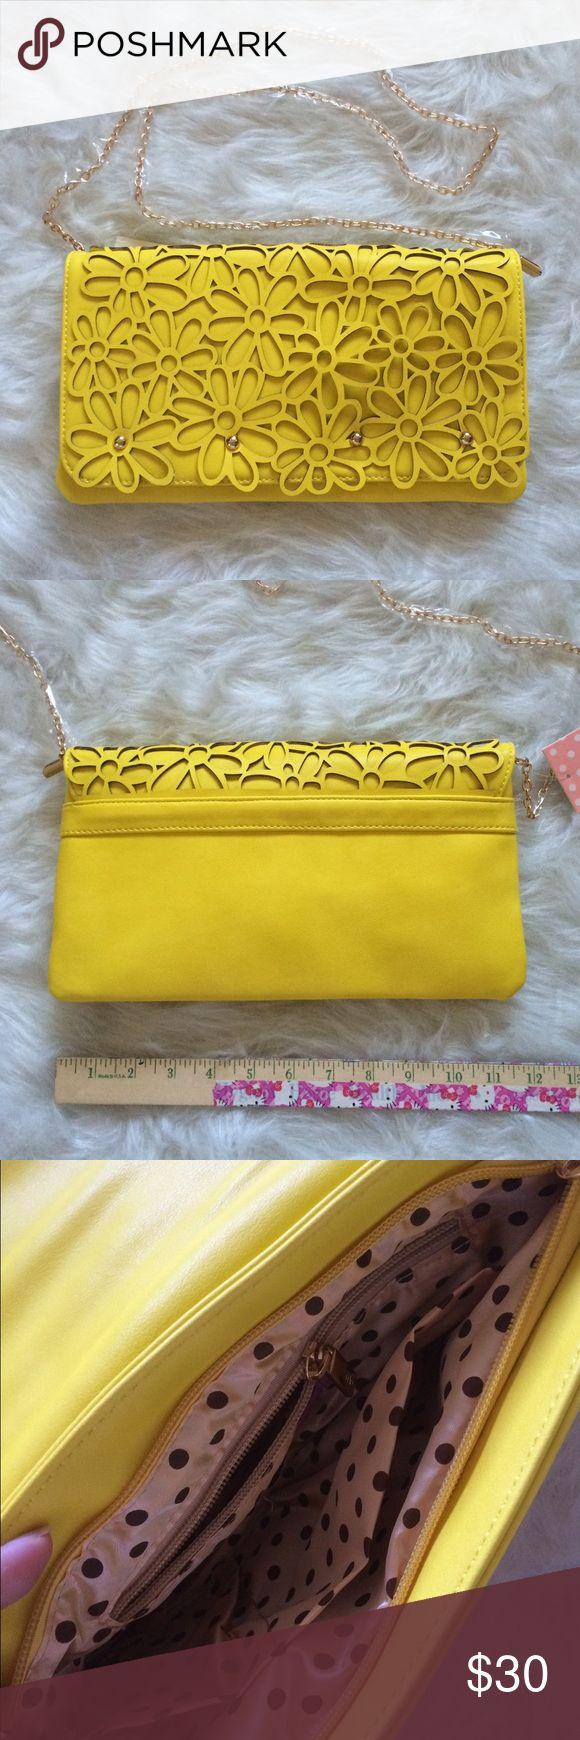 Melie Bianco Purse NWT. Can be a clutch or shoulder bag. Faux leather. Has detachable gold colored chain strap. Magnetic closure. Offers and questions are welcome. No trades. Melie Bianco Bags